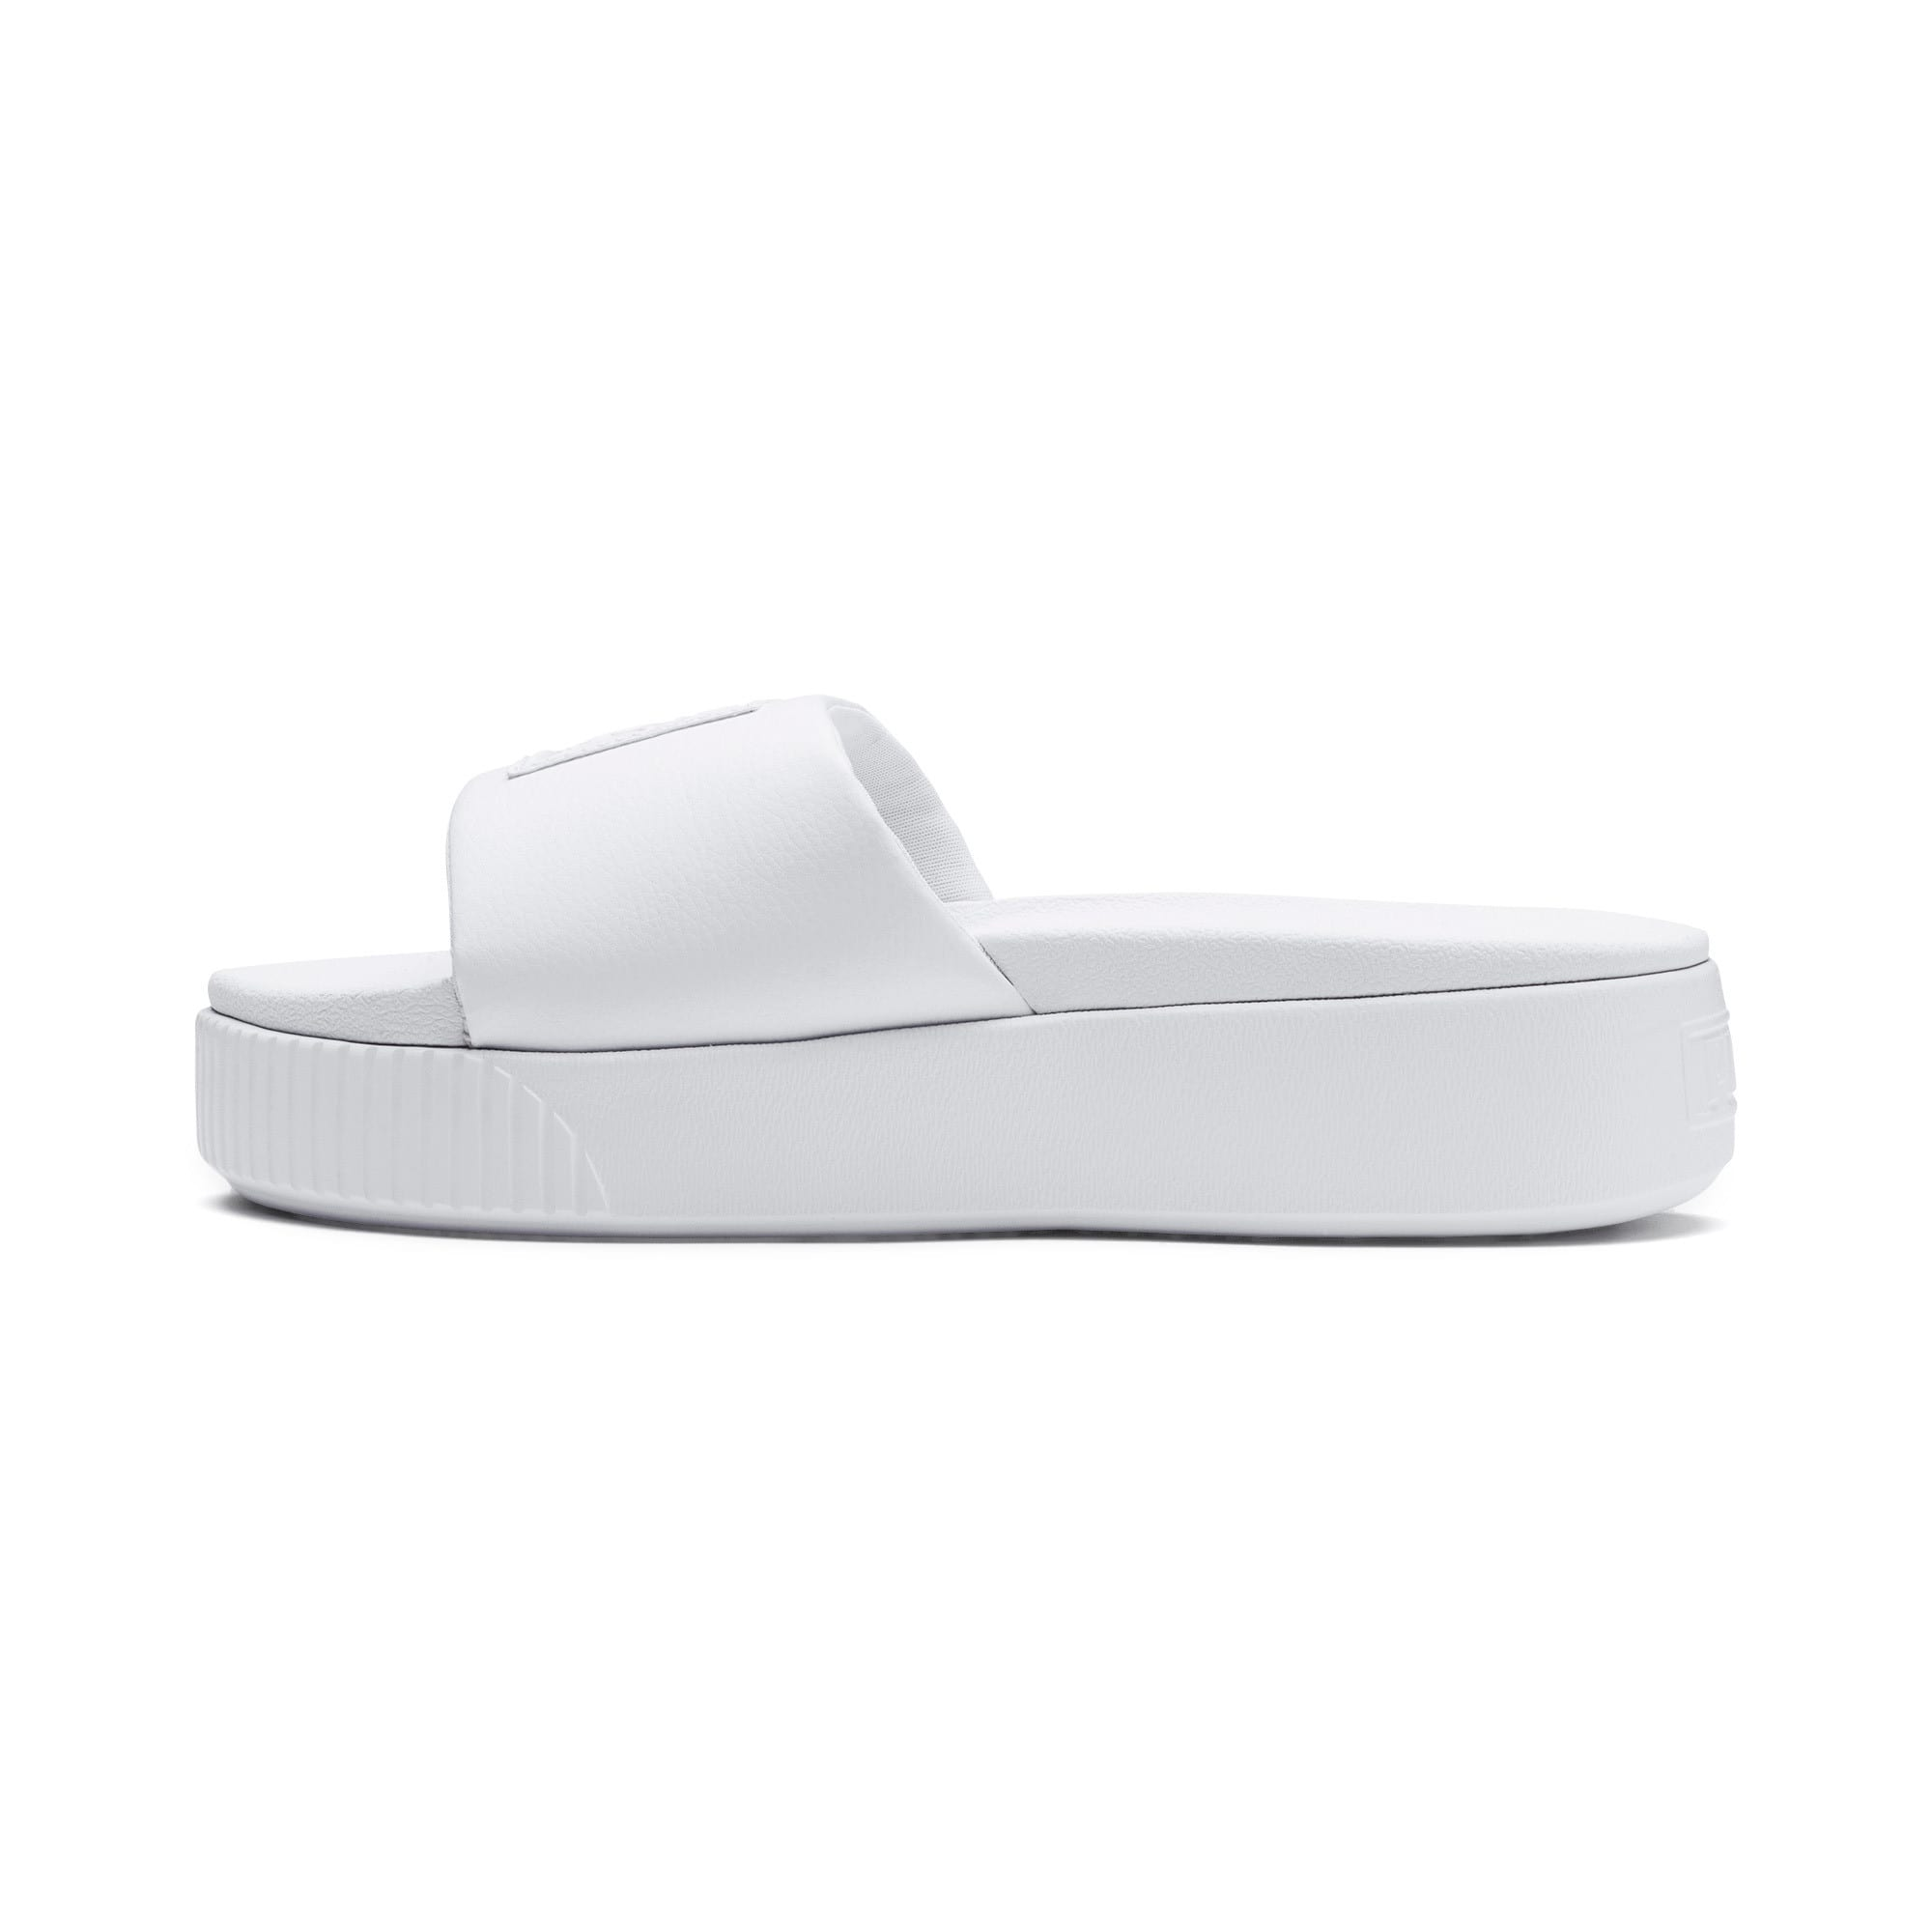 Thumbnail 1 of Platform Slide Women's Sandals, Puma White-Puma White, medium